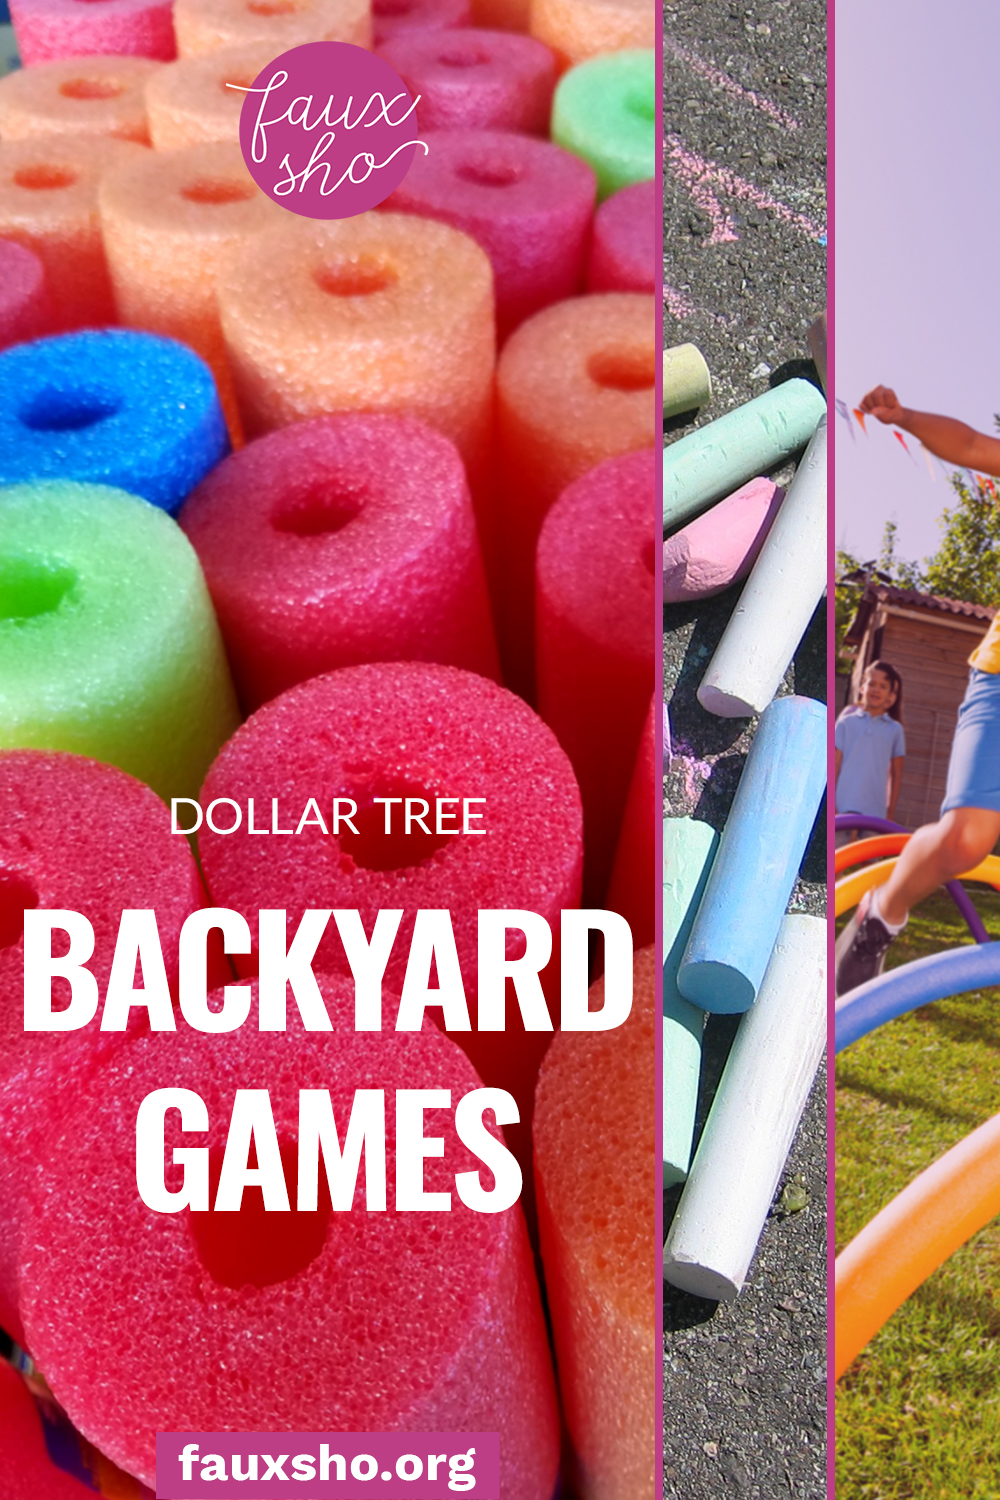 Looking for some fun and out of the box ideas to keep your kids from getting bored? These five dollar tree backyard games are sure to do the trick! #FauxShoBlog #DollarTreeHacks #SummerBackyardGames #PoolNoodleGames #DollarTreeBackyardGames